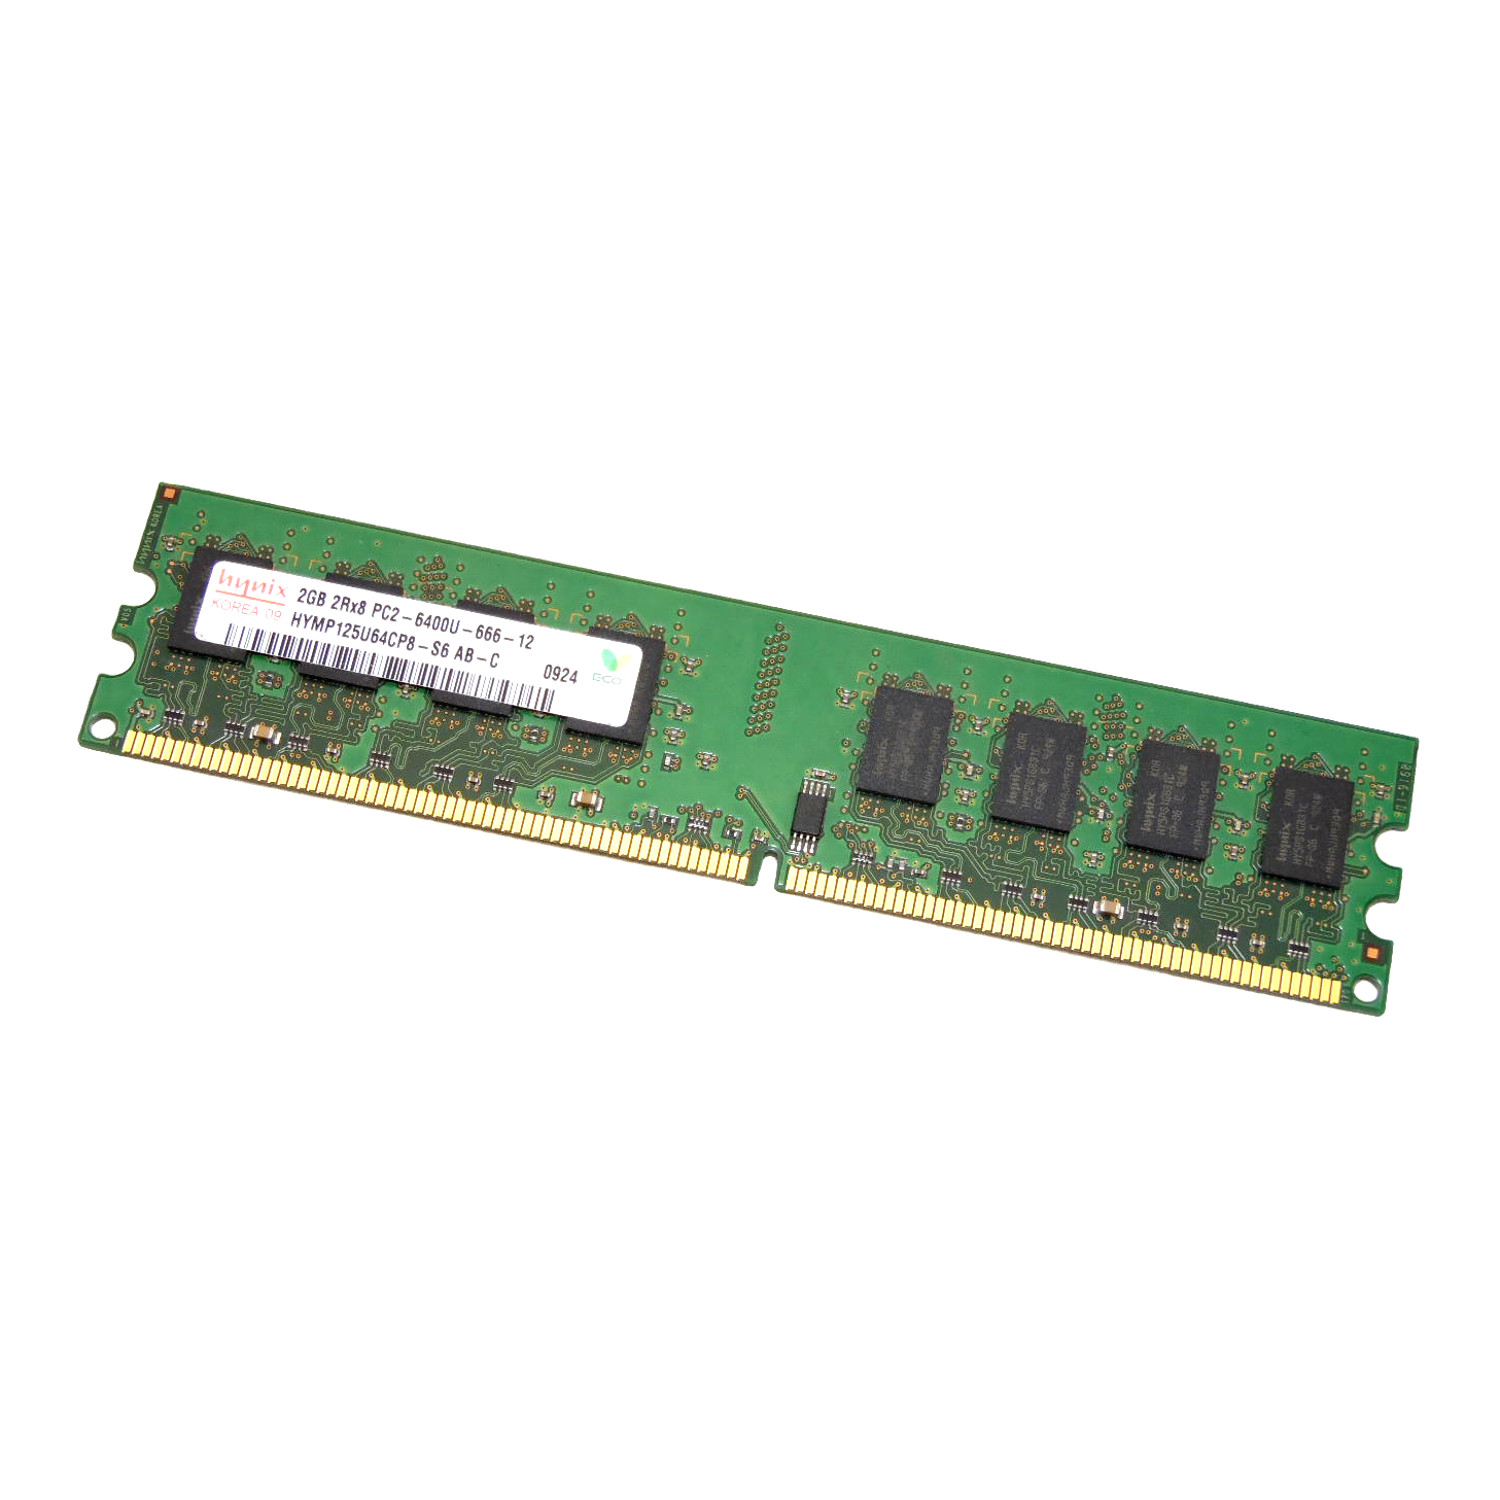 DDR3-10600 (DDR3-1333MHz) 2GB Desktop Memory Module Mixed Brand Used A